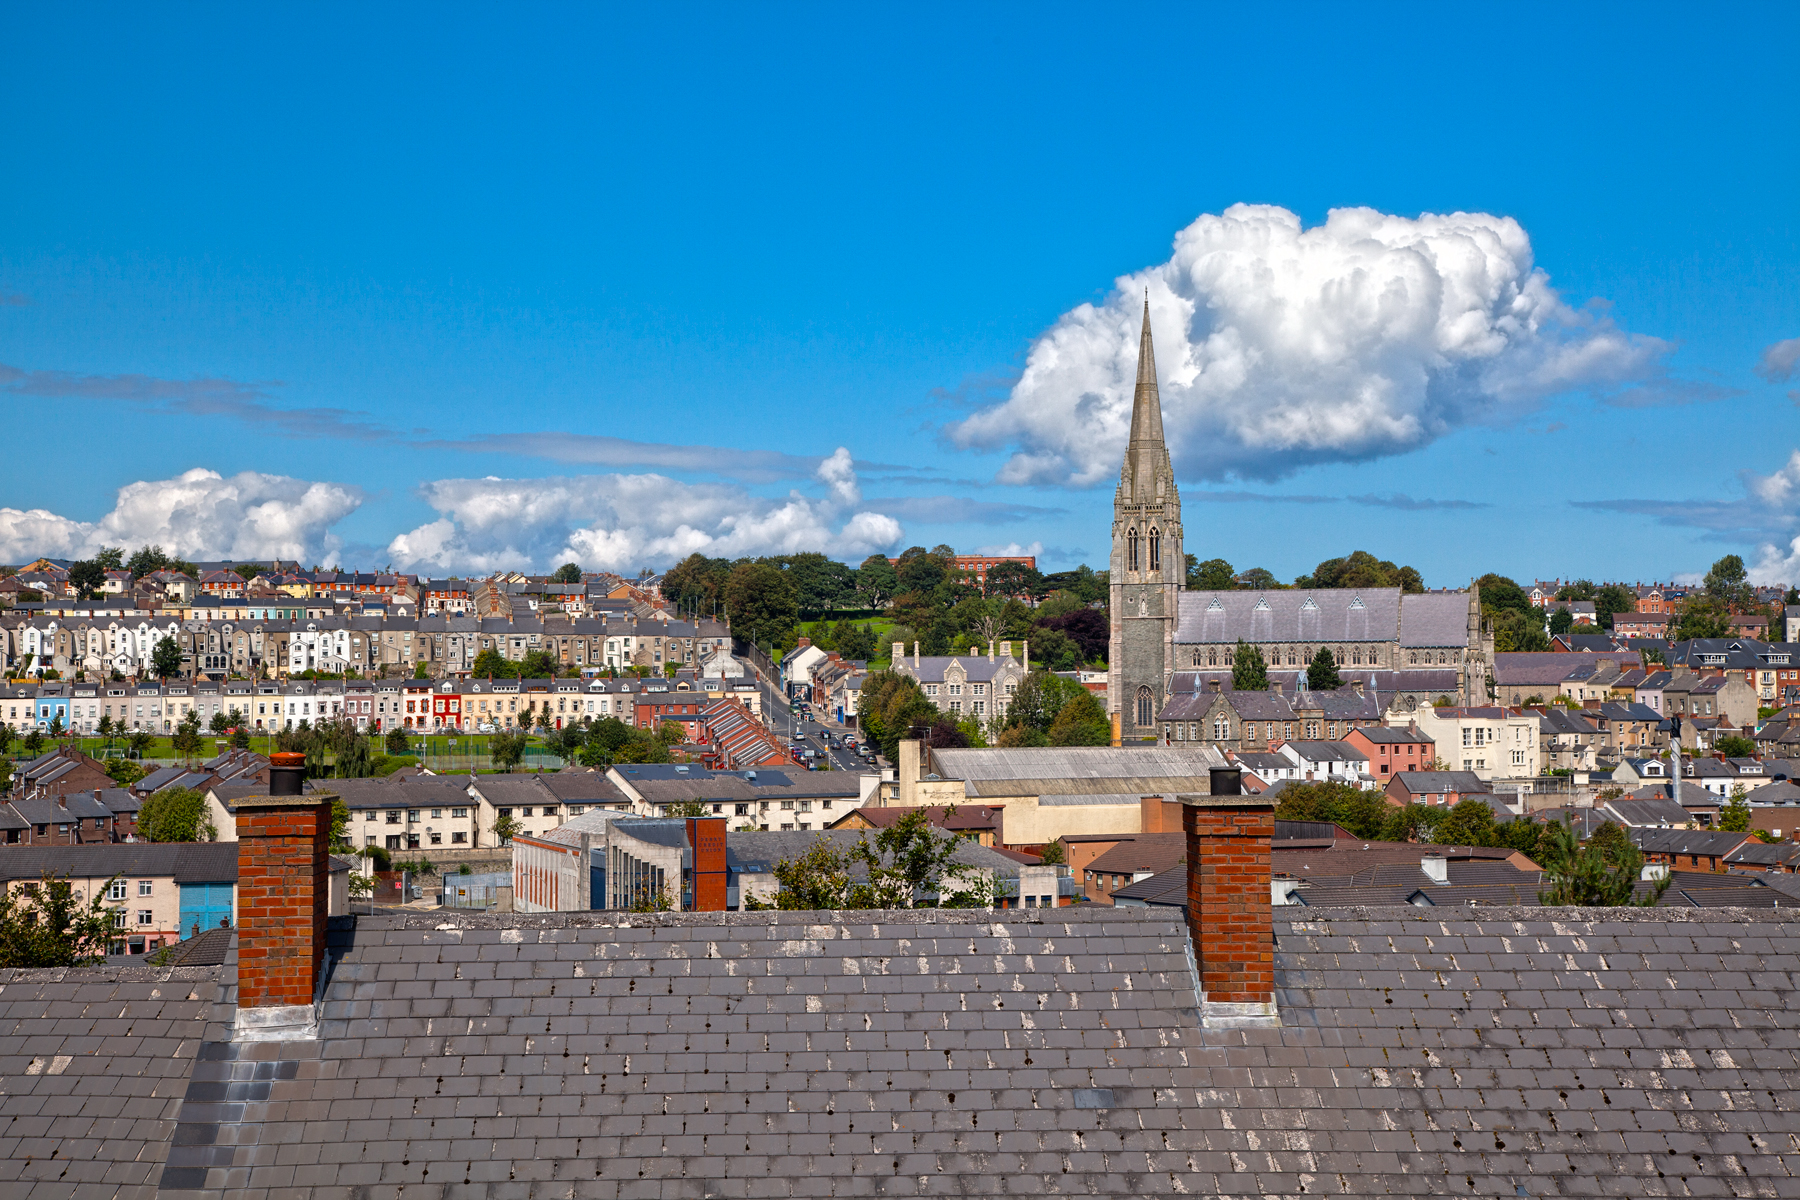 Derry Cityscape - HDR, Angle, Picture, Rooftop, Roofs, HQ Photo